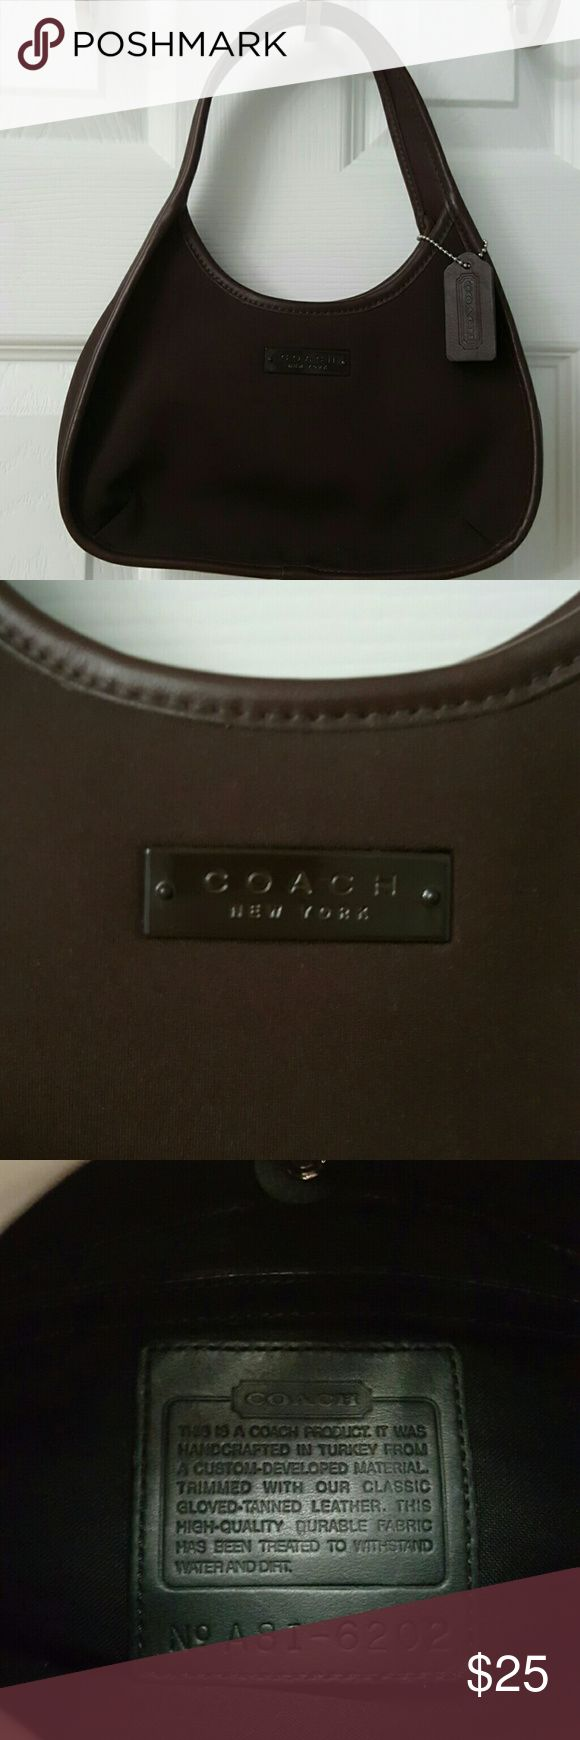 Coach brown handbag This coach handbag is a dark brown neoprene material. Hangtag included  No stains inside or outside. Nonsmoking home. Coach Bags Mini Bags